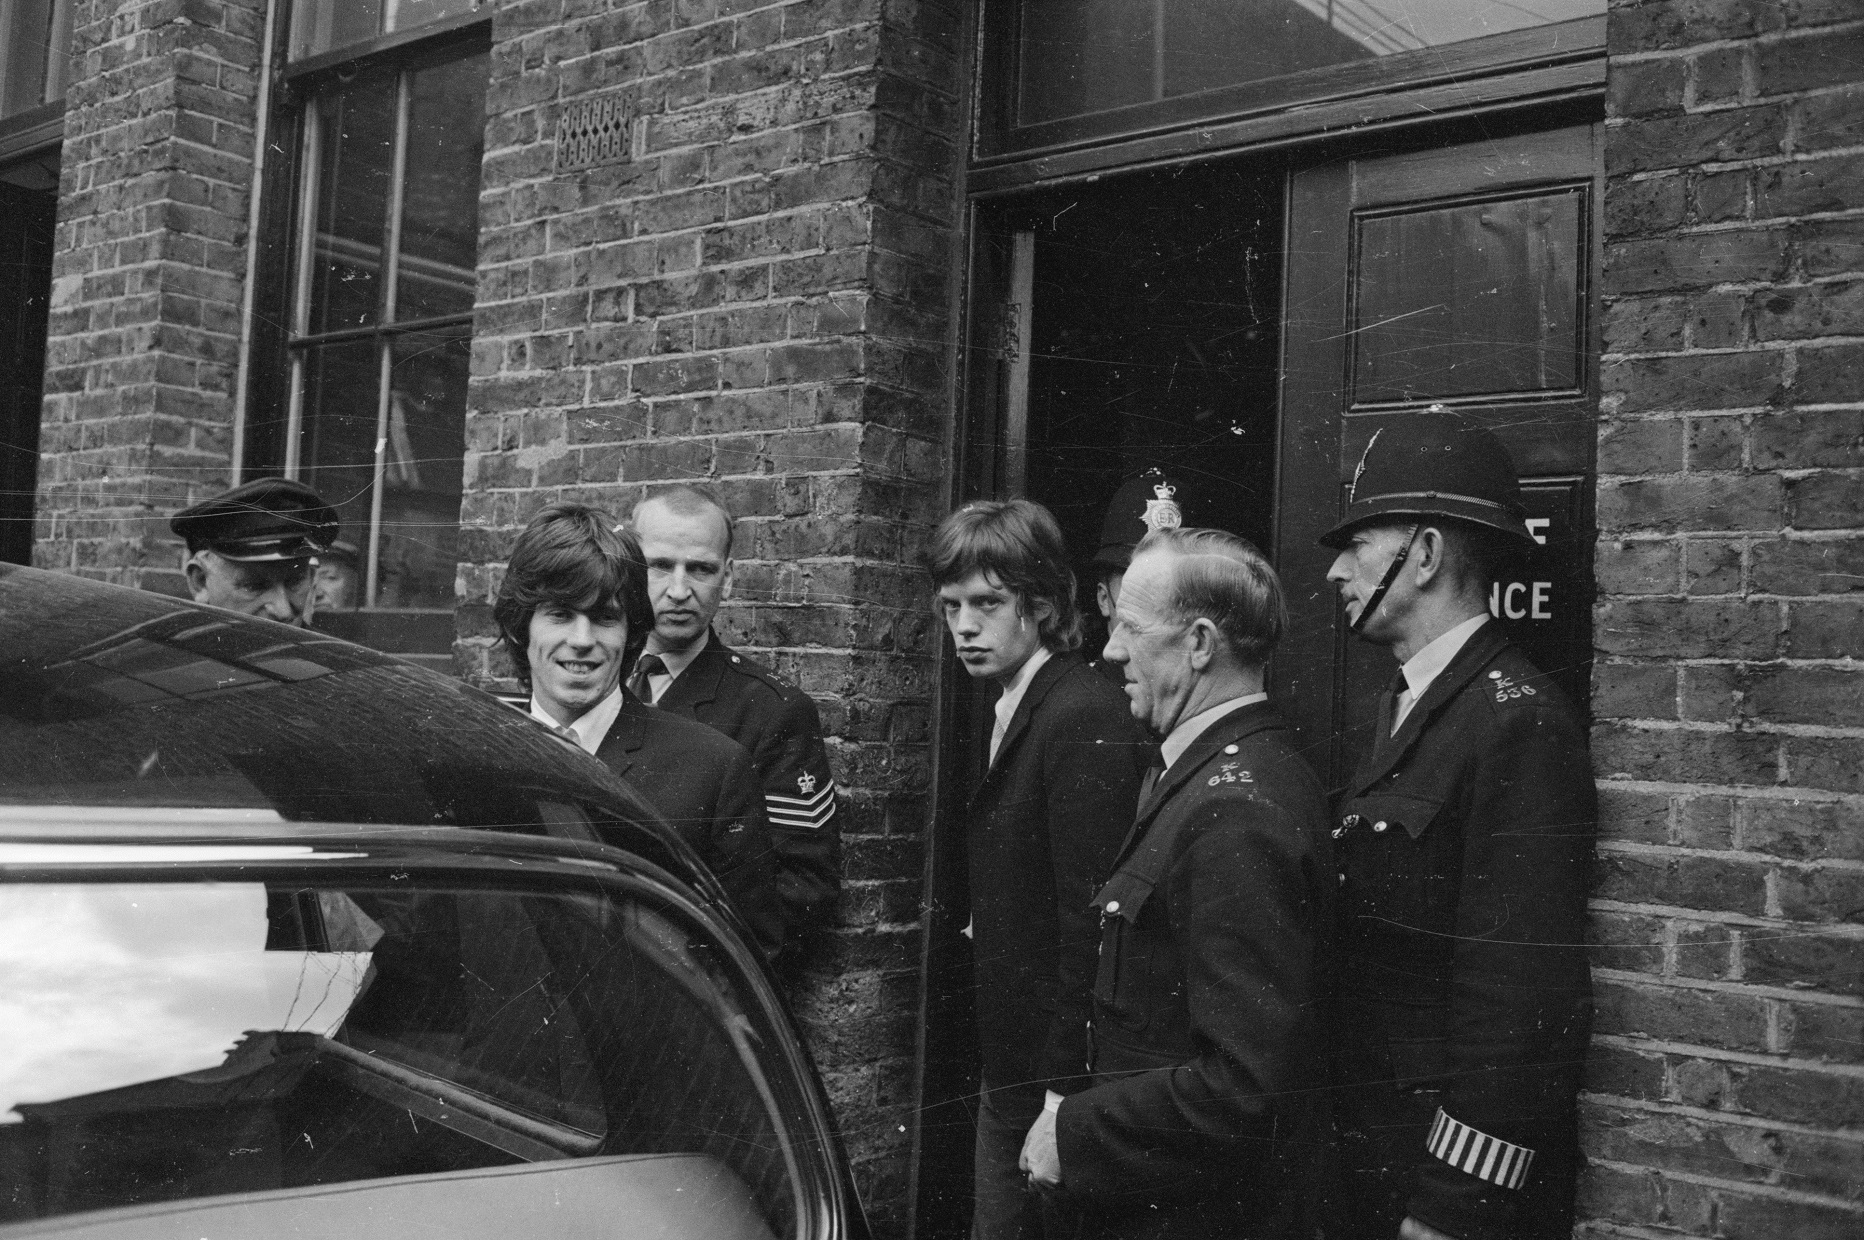 Mick Jagger and Keith Richards leaving jail in 1965